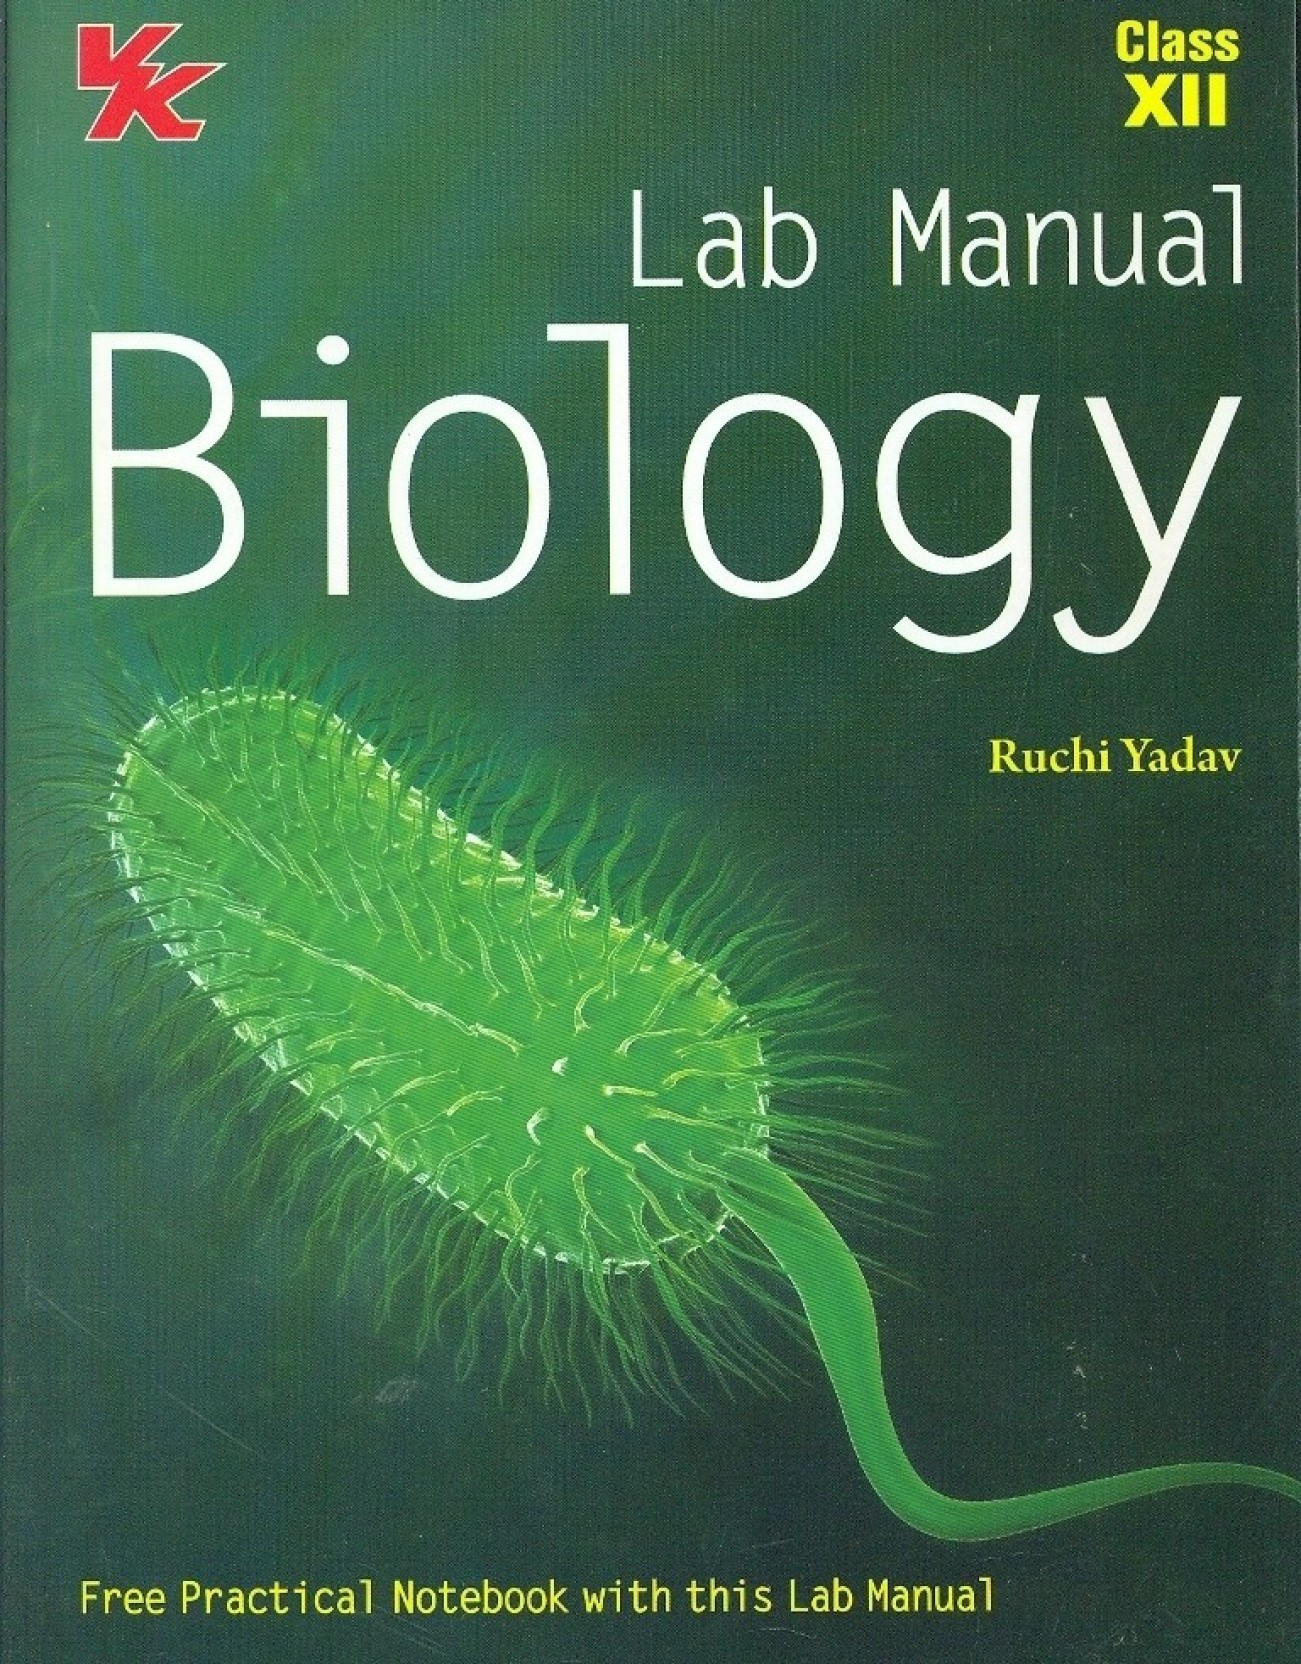 Lal Manual Biology Class 12 : Free Practical With This Lab Manual PB. Share